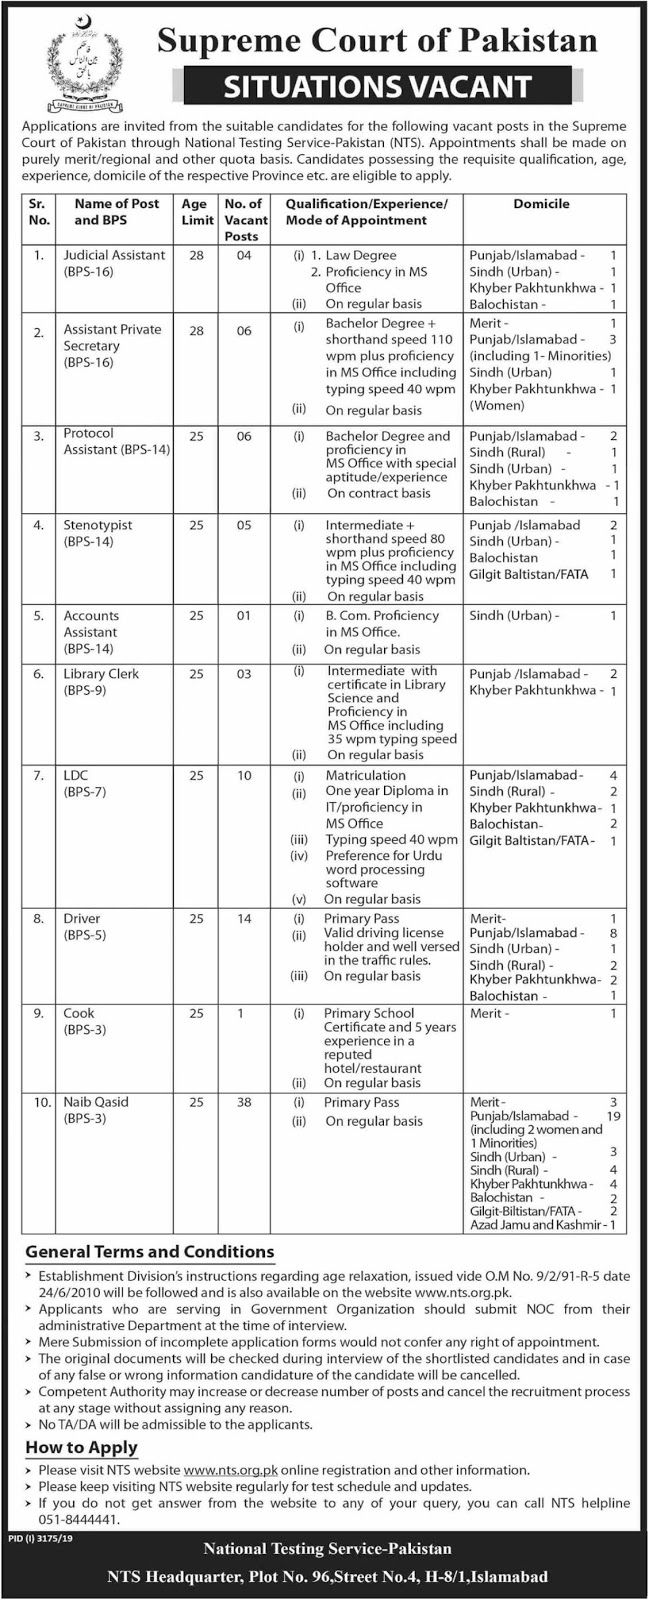 Jobs in Supreme Court, Supreme Court Jobs NTS Online Application Form December 2019